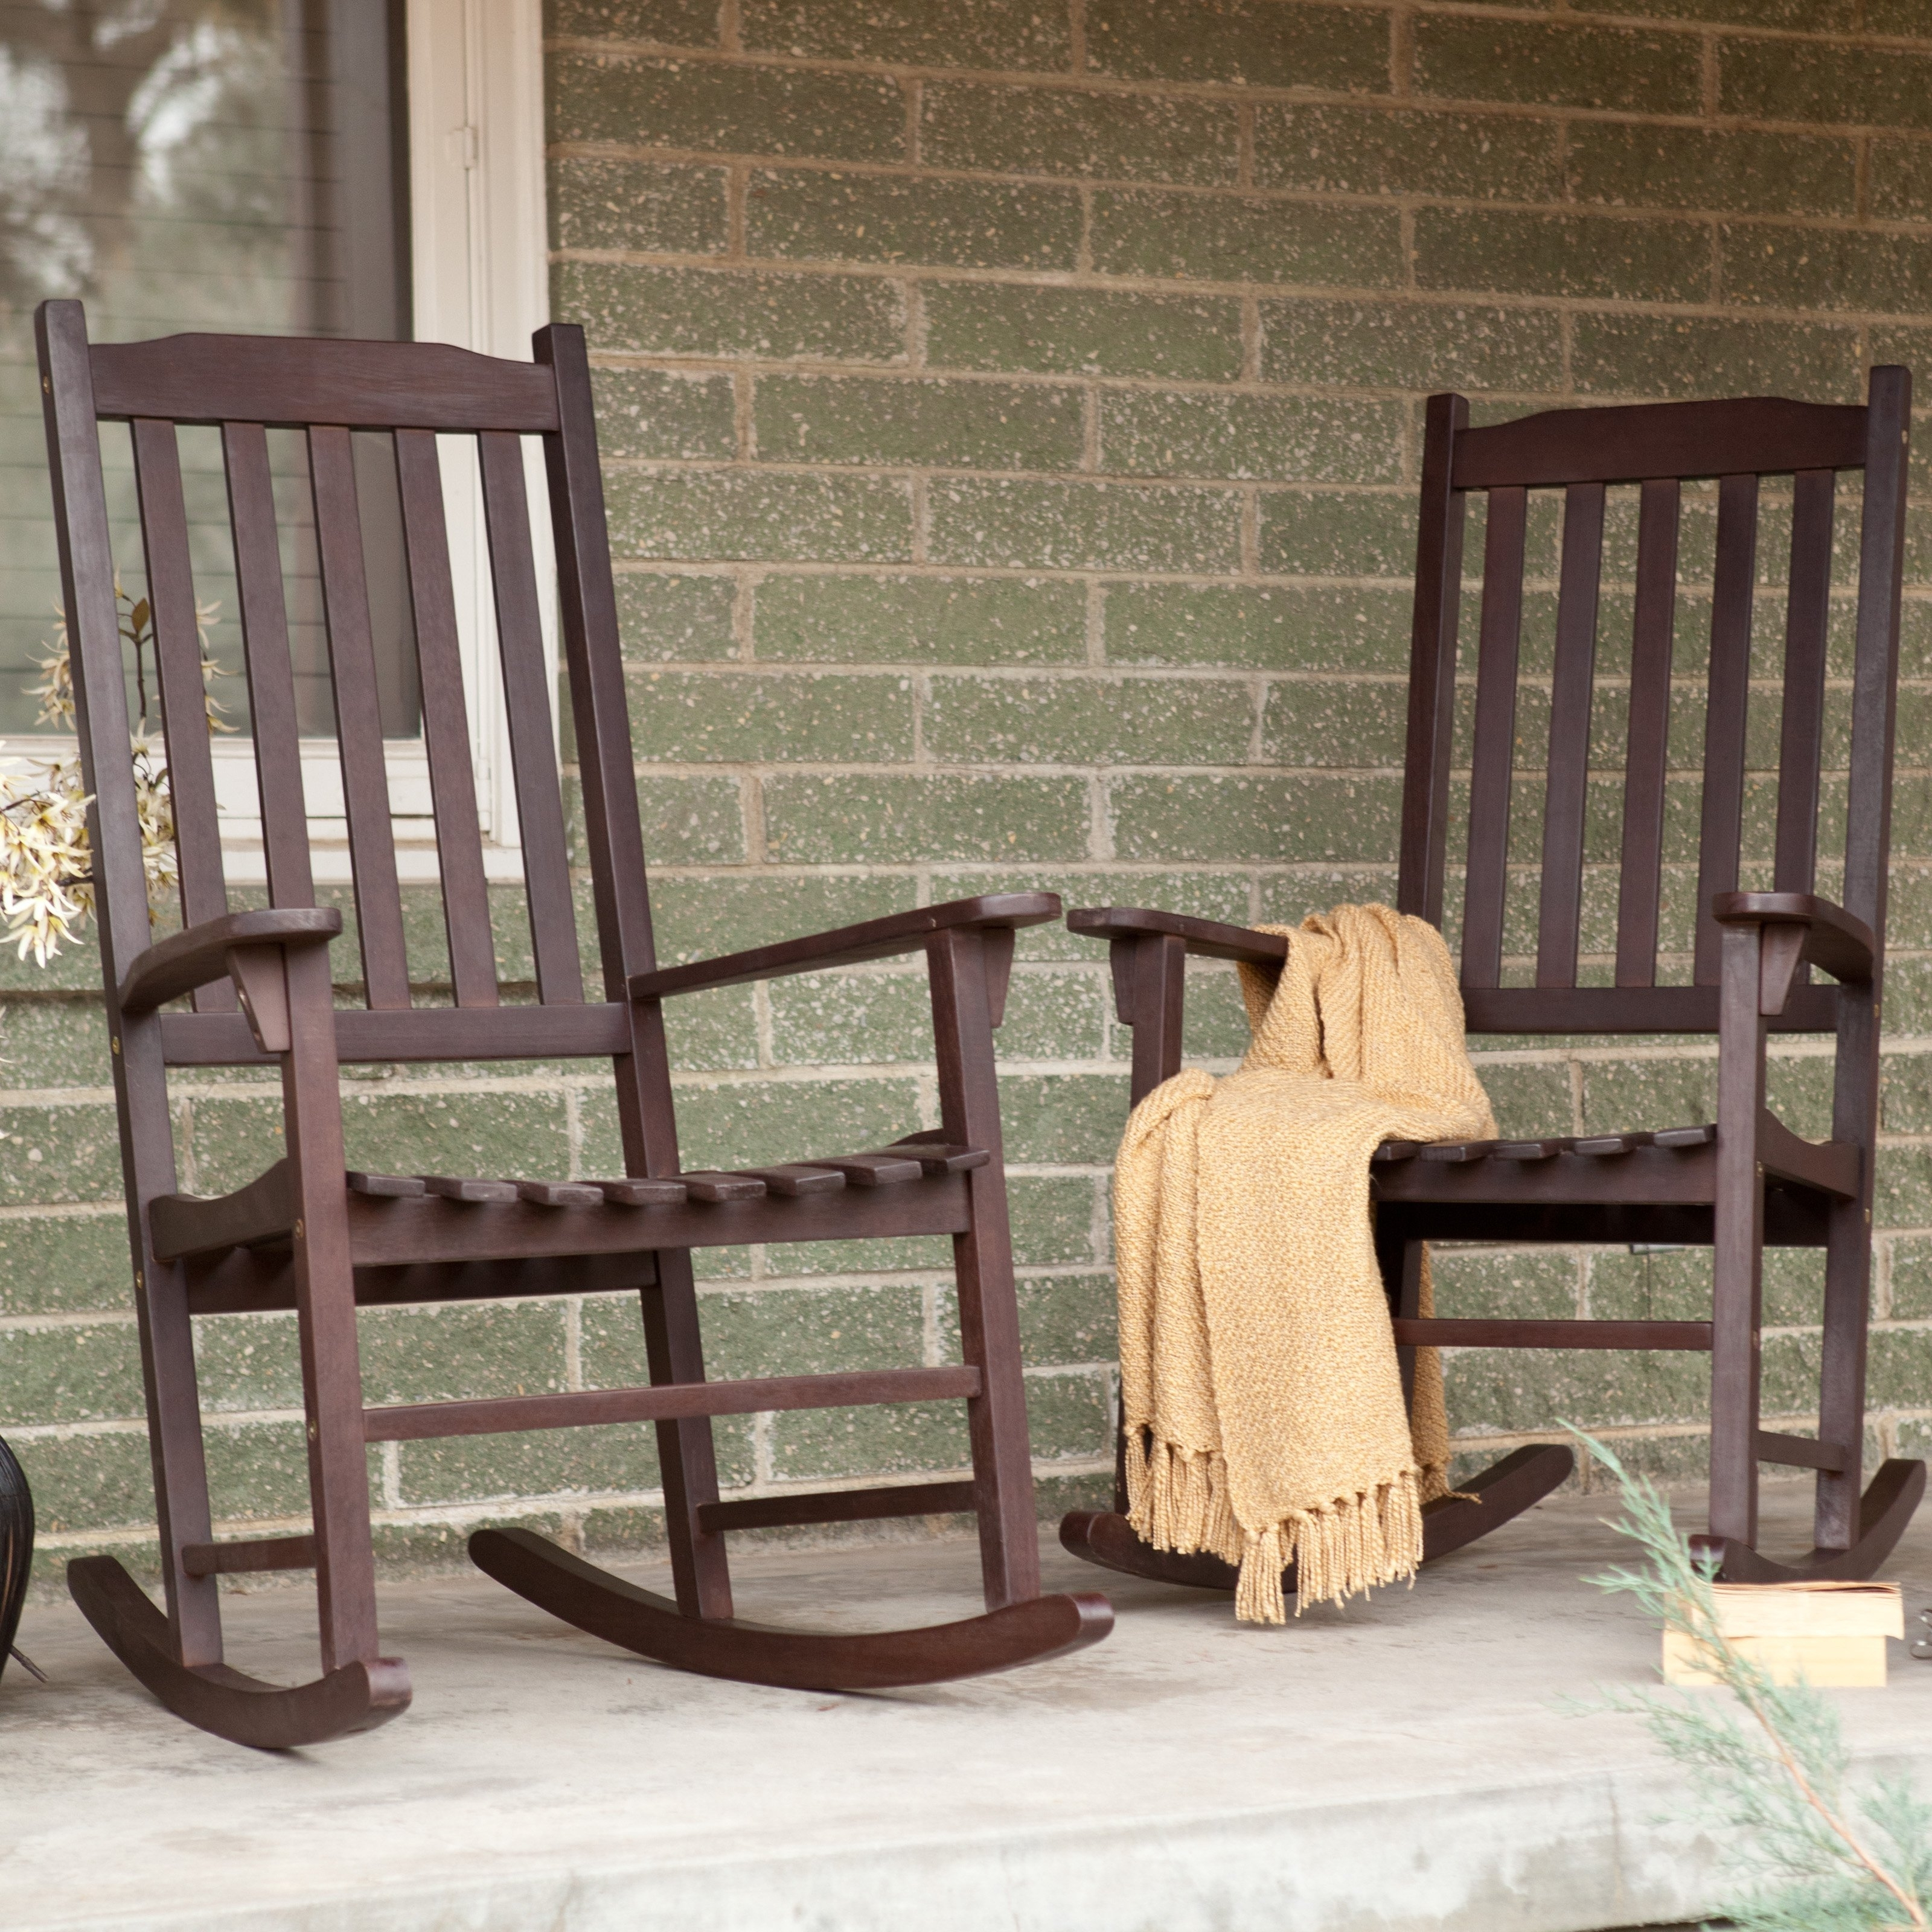 Widely Used How To Choose Comfortable Outdoor Rocking Chairs – Yonohomedesign Inside Unique Outdoor Rocking Chairs (View 15 of 15)